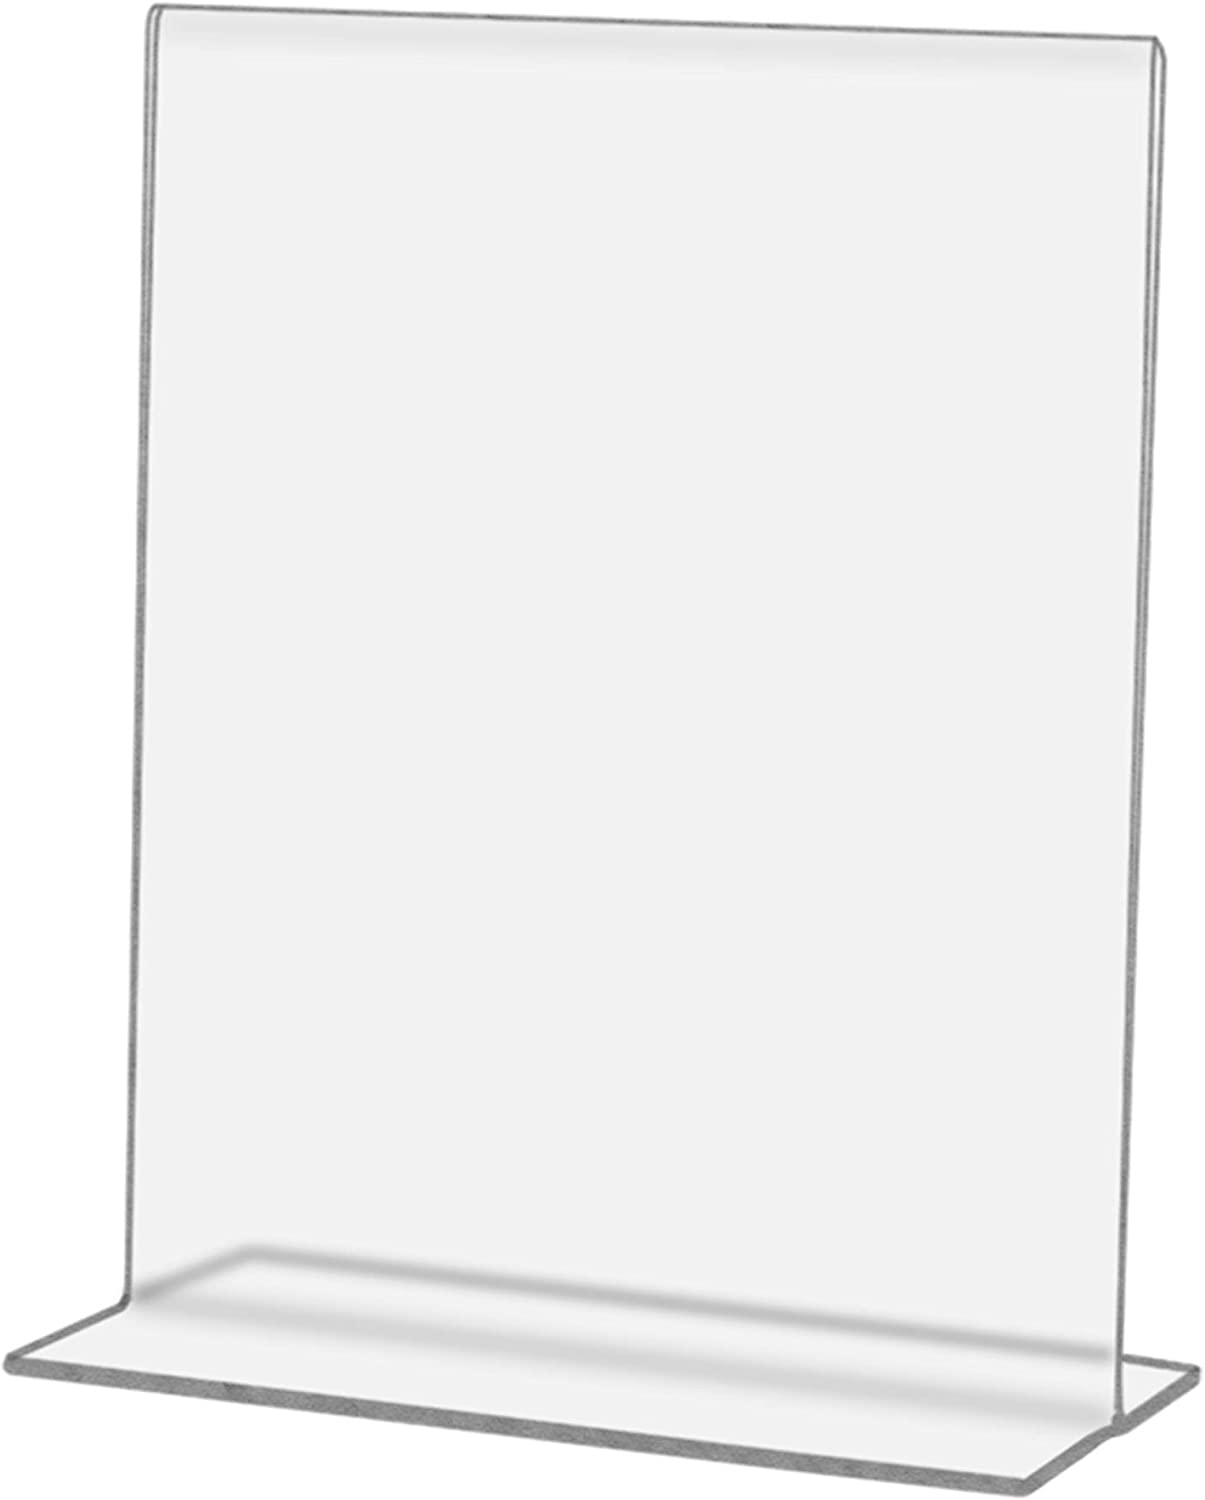 Marketing Holders Literature Flyer Poster Frame Letter Notice Menu Pricing Deli Table Tent Countertop Expo Event Sign Holder Display Stand Double Sided Bottom Loading 5w x 3h Pack of 24